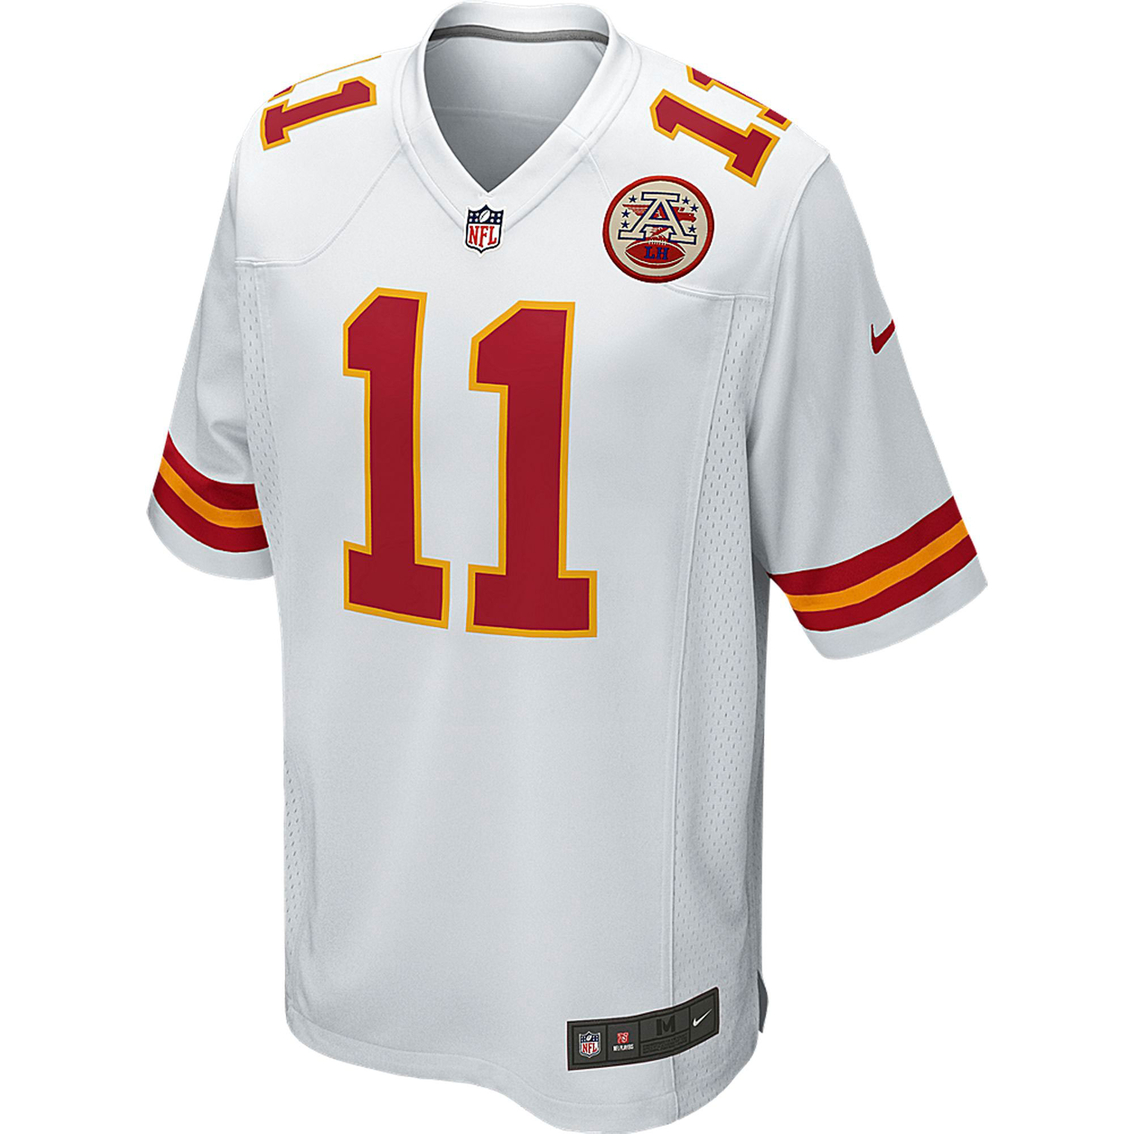 Nike nfl kansas city chiefs alex smith game jersey for Furniture xchange new jersey